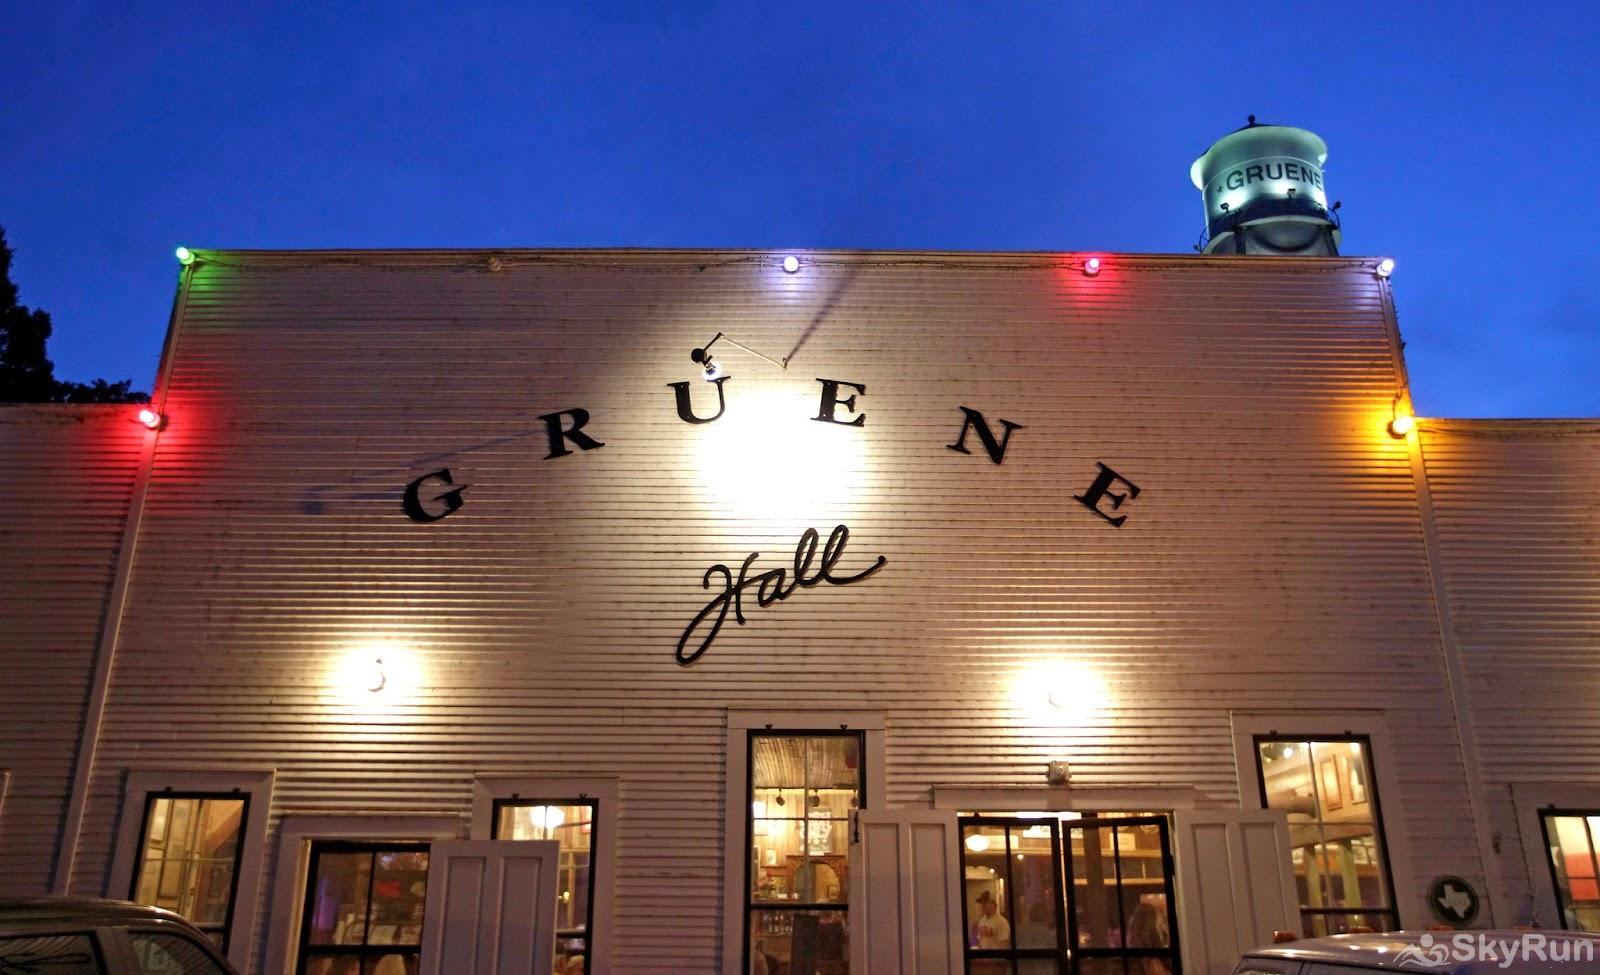 HACIENDA LAKE LODGE Historic Gruene Hall in nearby New Braunfels